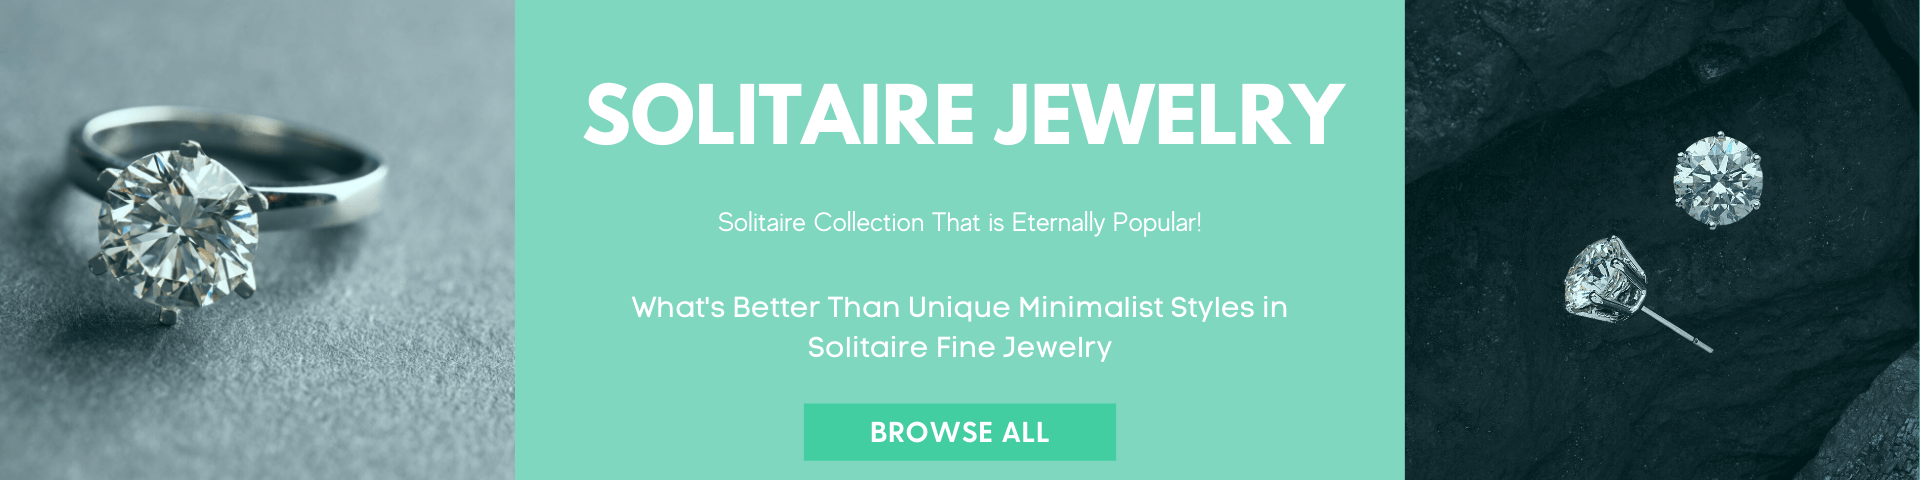 Solitaire Jewelry